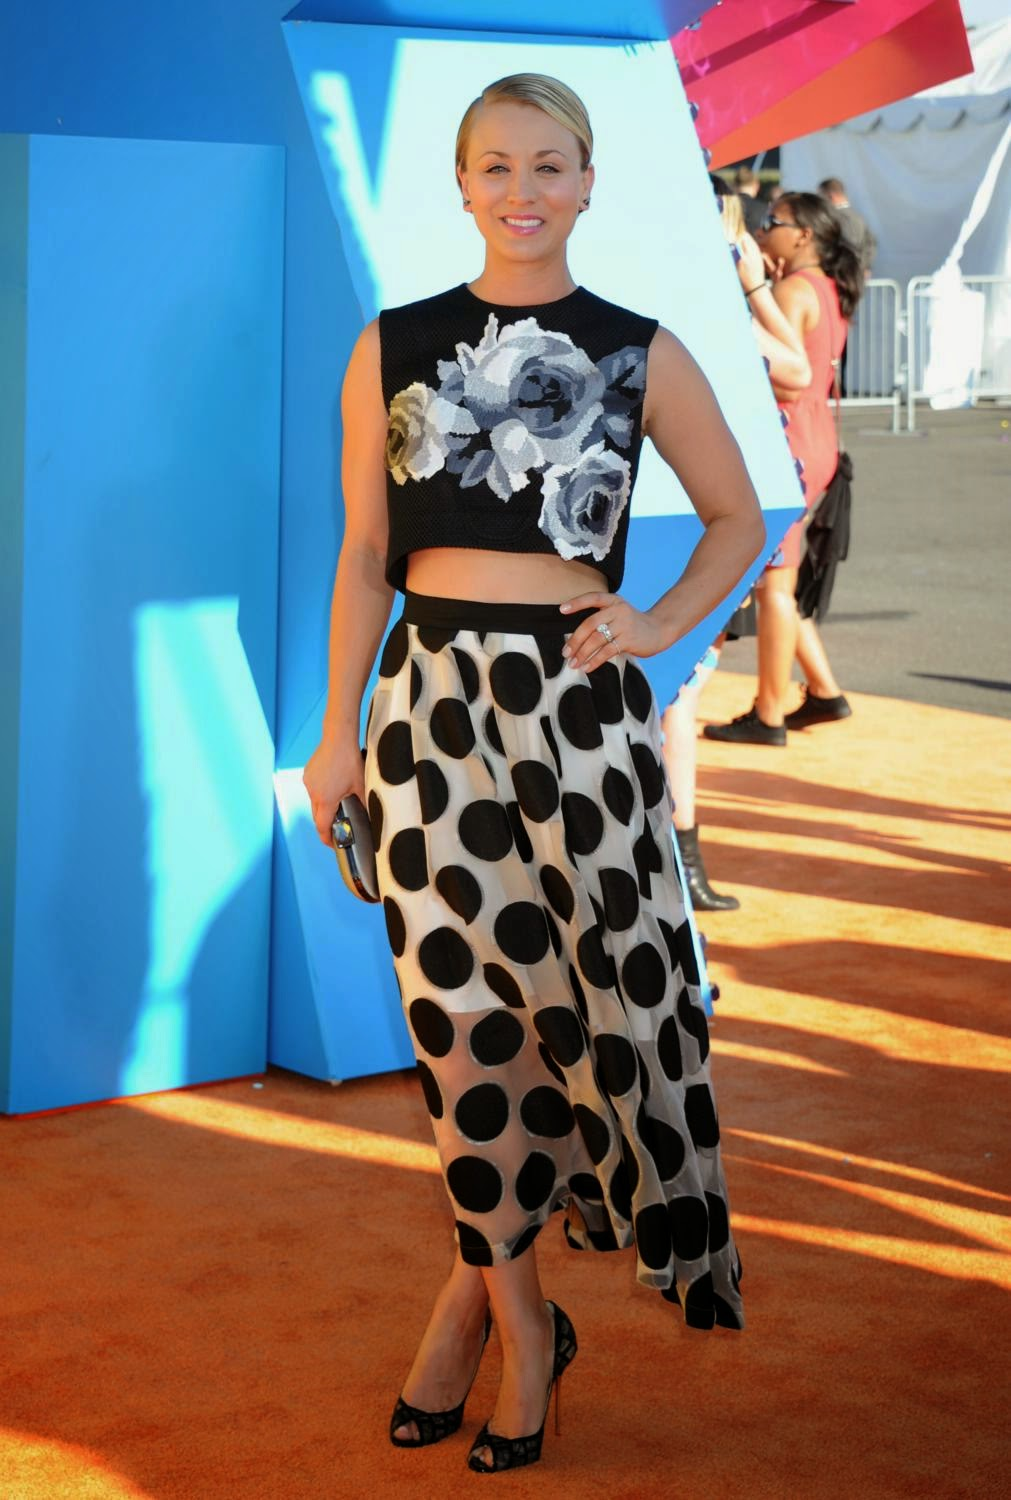 Kaley Cuoco in a Lela Rose attire at the 2015 Nickelodeon Kids' Choice Awards